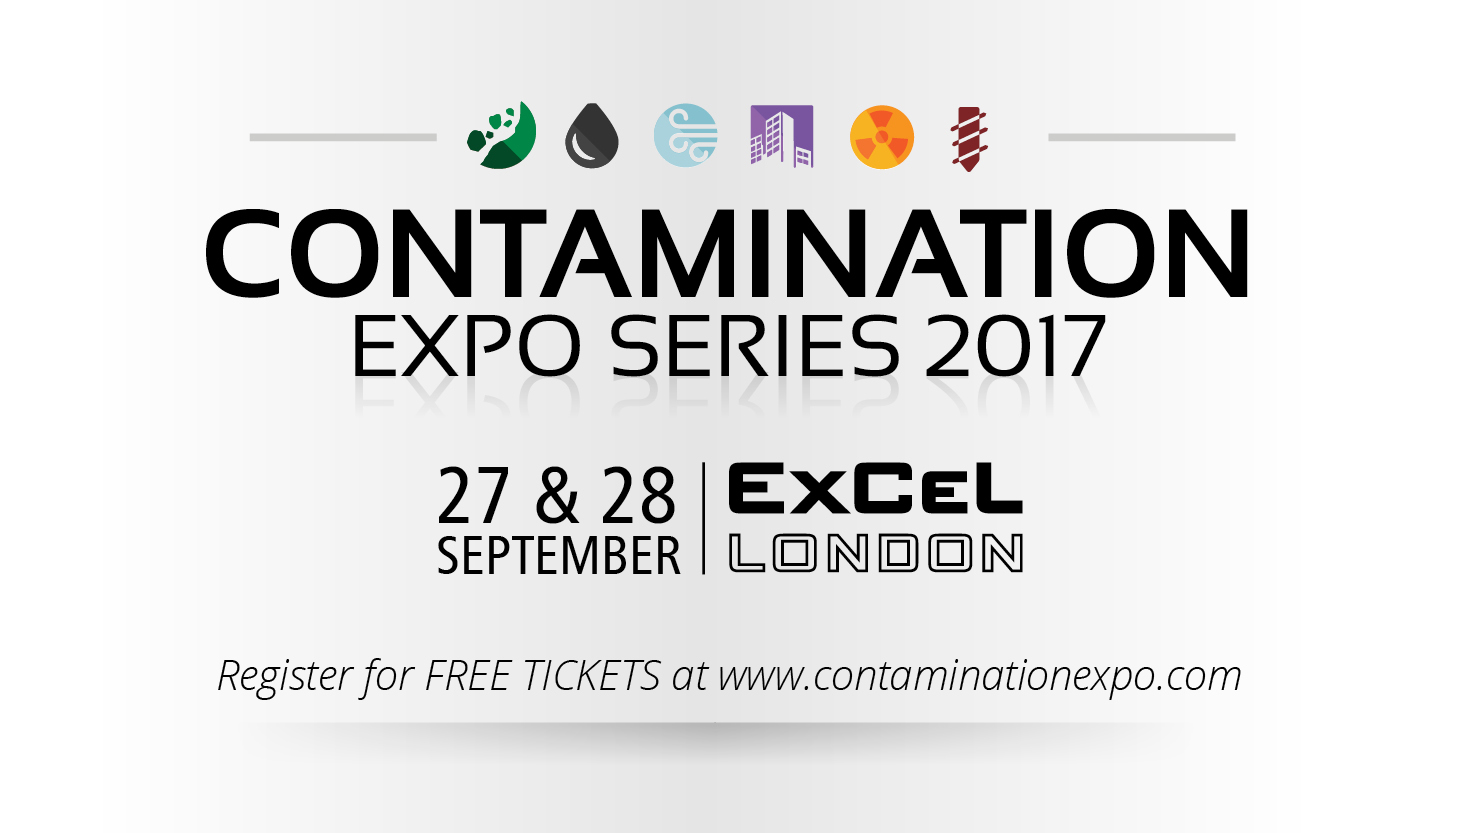 Contamination Expo image